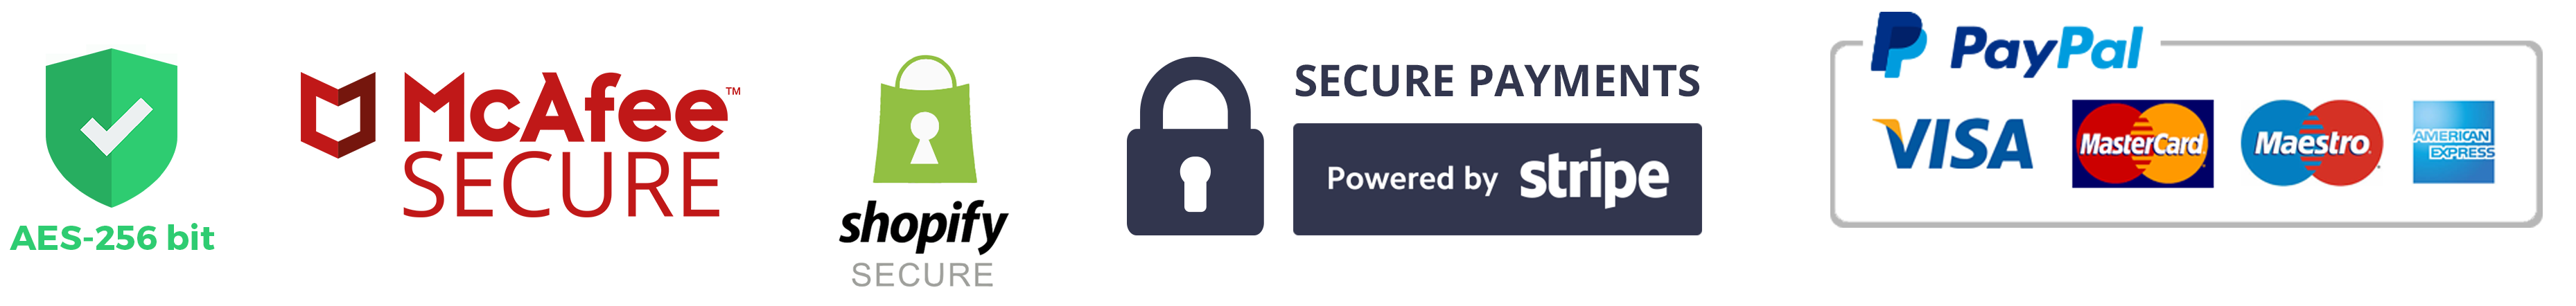 AES-256 bit, McAfee Secure, Shopify Secure, Secure Payments - Powered by Stripe, PayPal